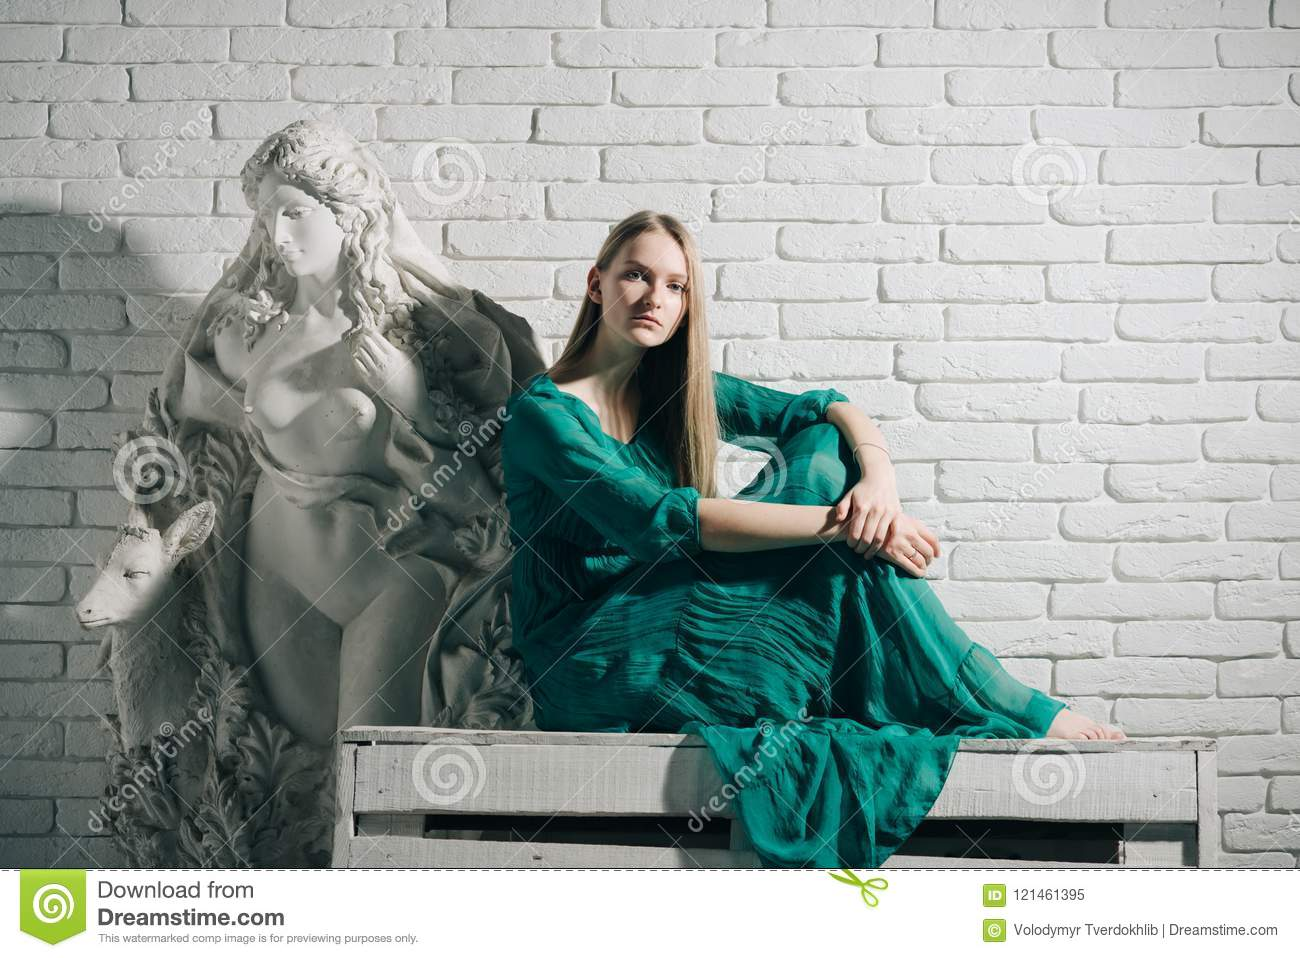 Woman artist dream and think at gypsum sculpture at workshop on white brick wall background. Art and sculpture. Art